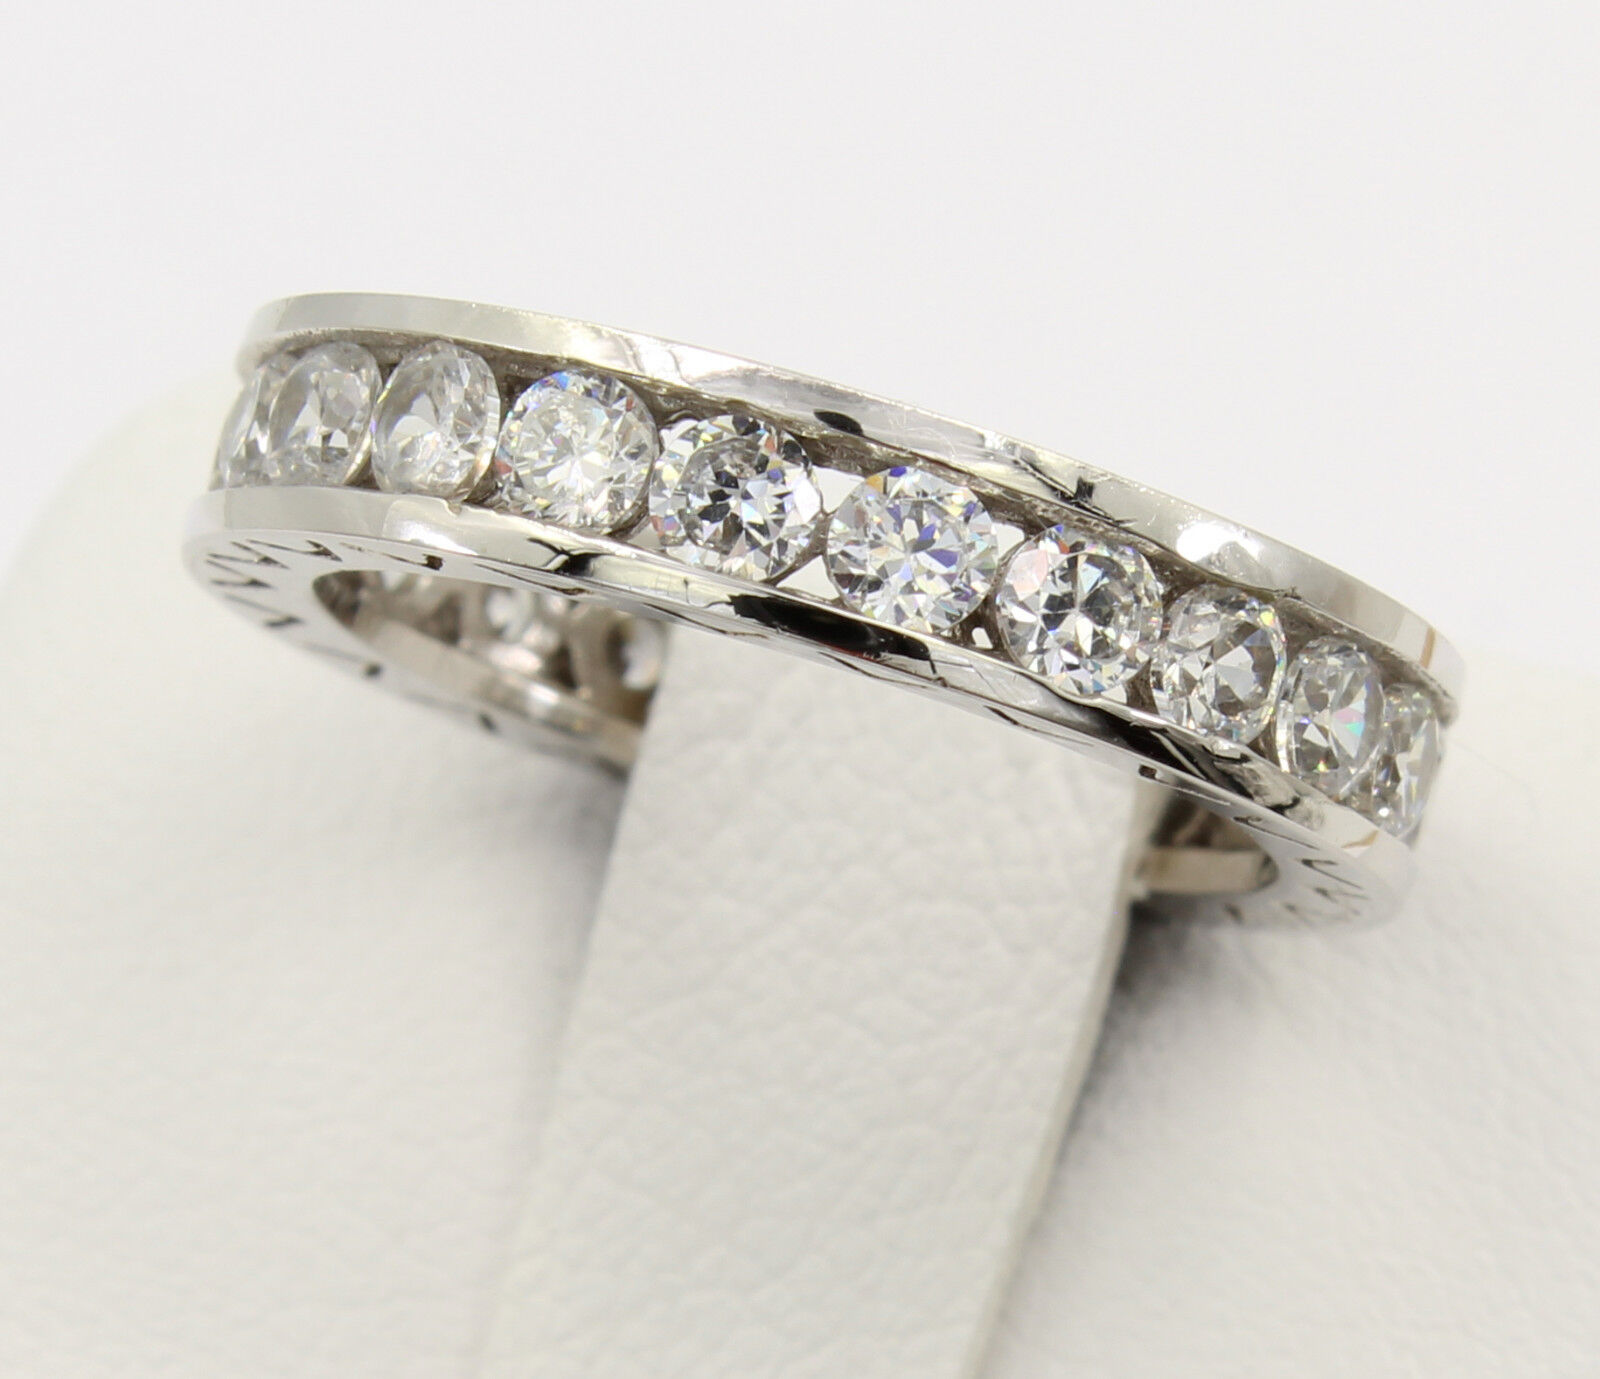 rings band wedding diamond com bands on white ideas gold costco anniversary atdisability of